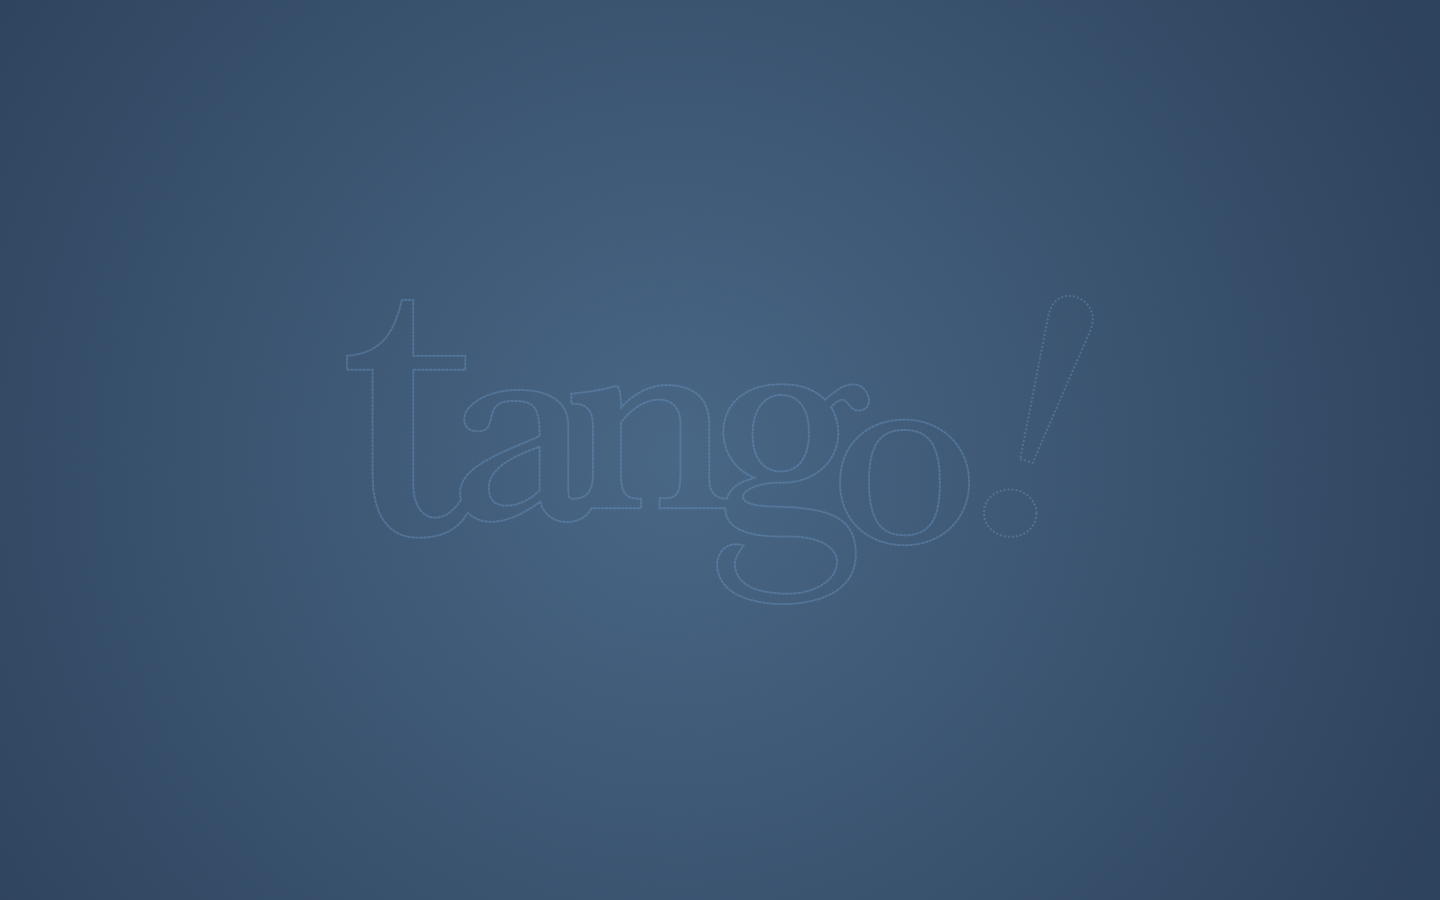 Tango Blue stitch by vicing